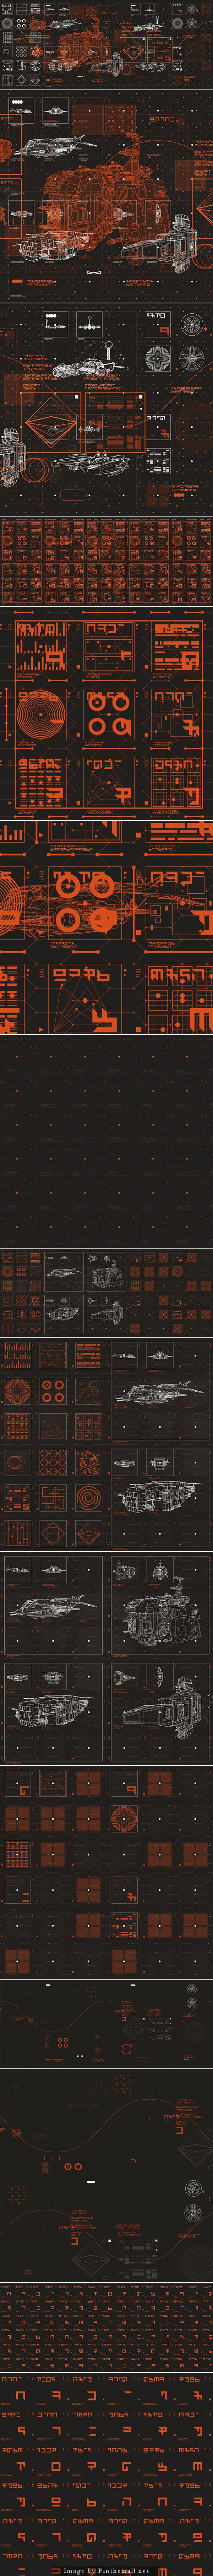 Audi by Sebastian Onufszak, via Behance